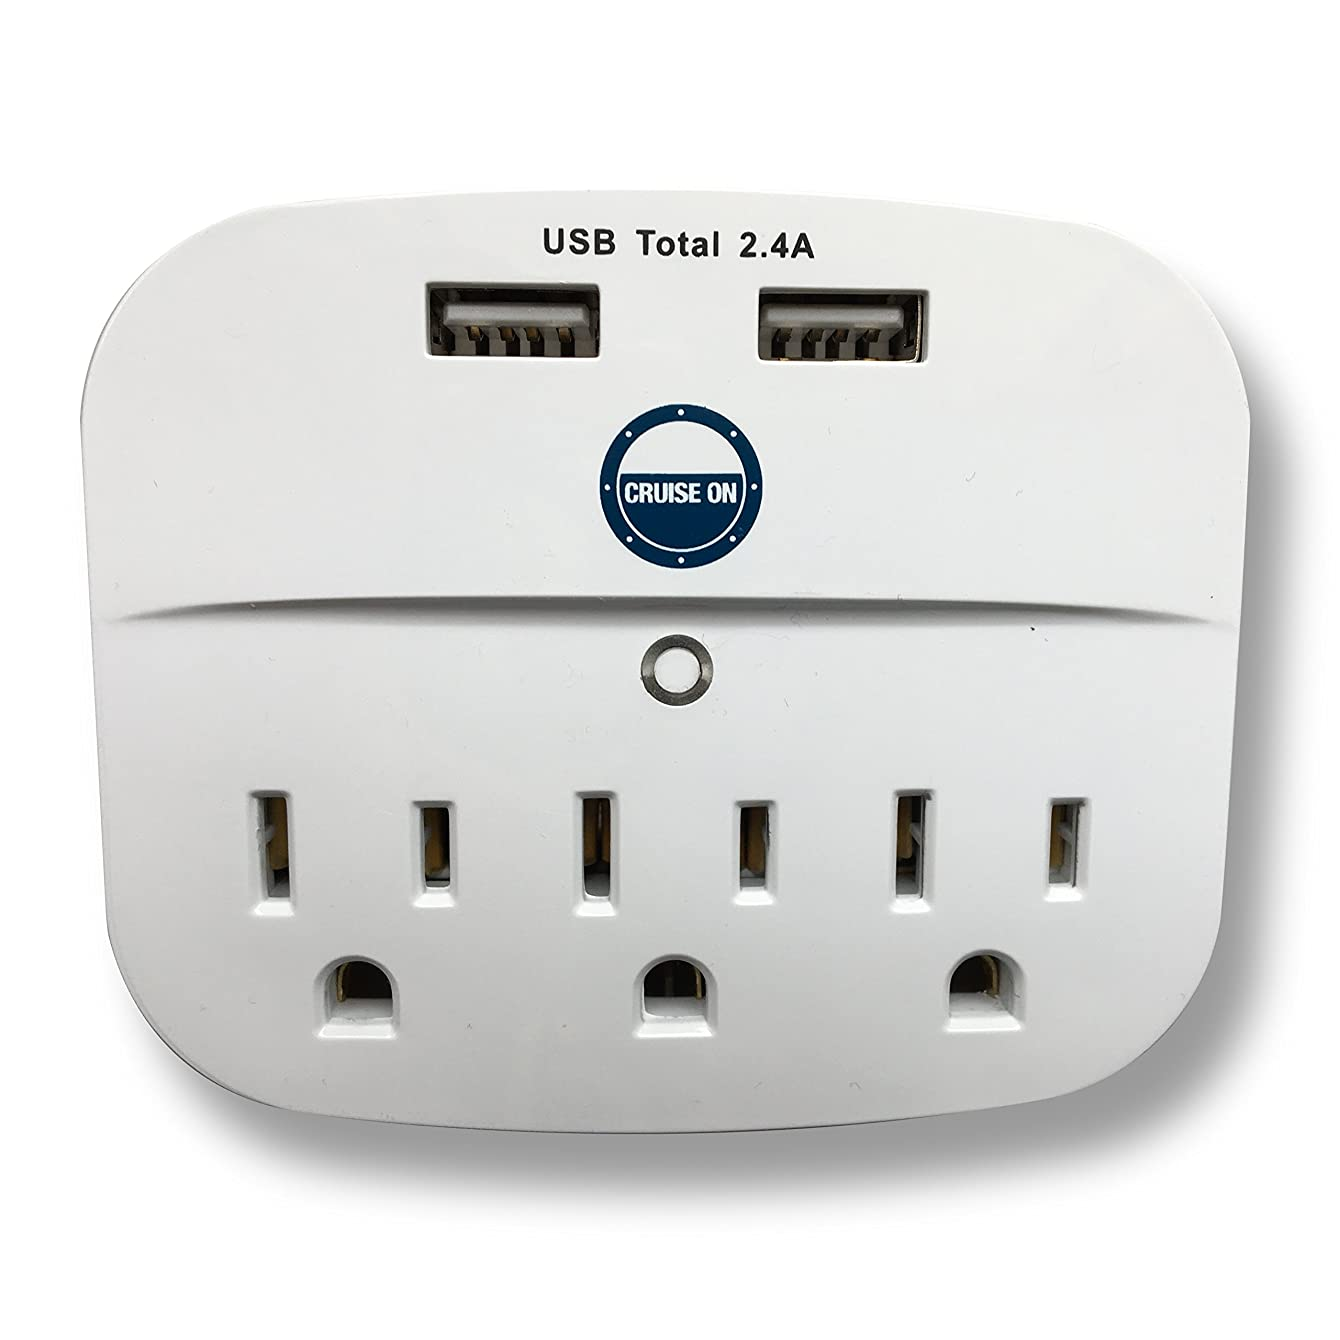 Cruise Power Strip with USB Outlets - Non Surge Protection & Ship Approved | Travel Accessories and Must Haves by Cruise On ynbzghewupyja06